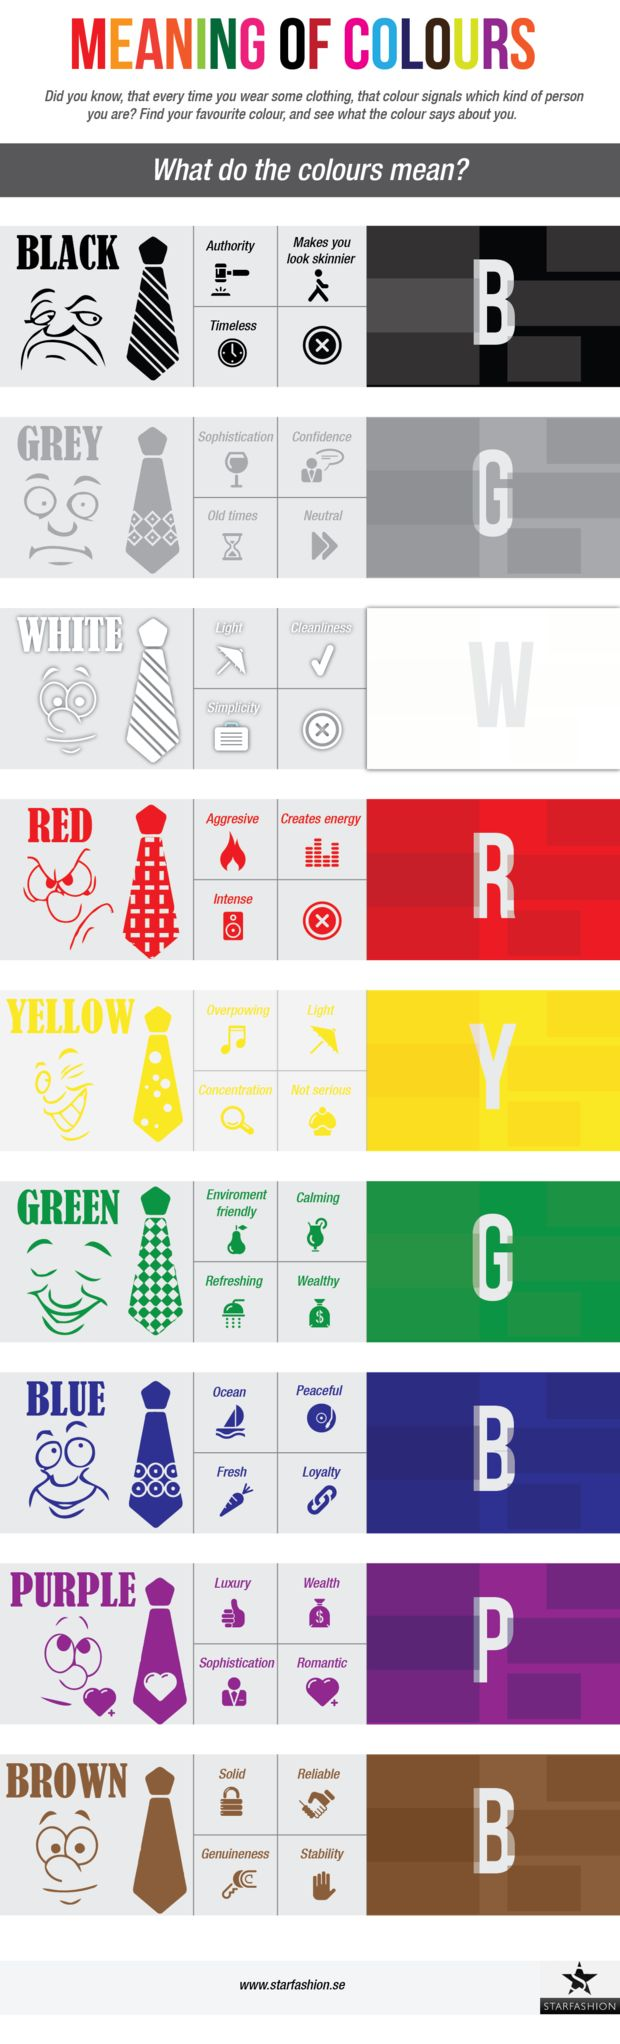 Meaning of Colours #Infographic: What the Color of Your Clothes Say About You?